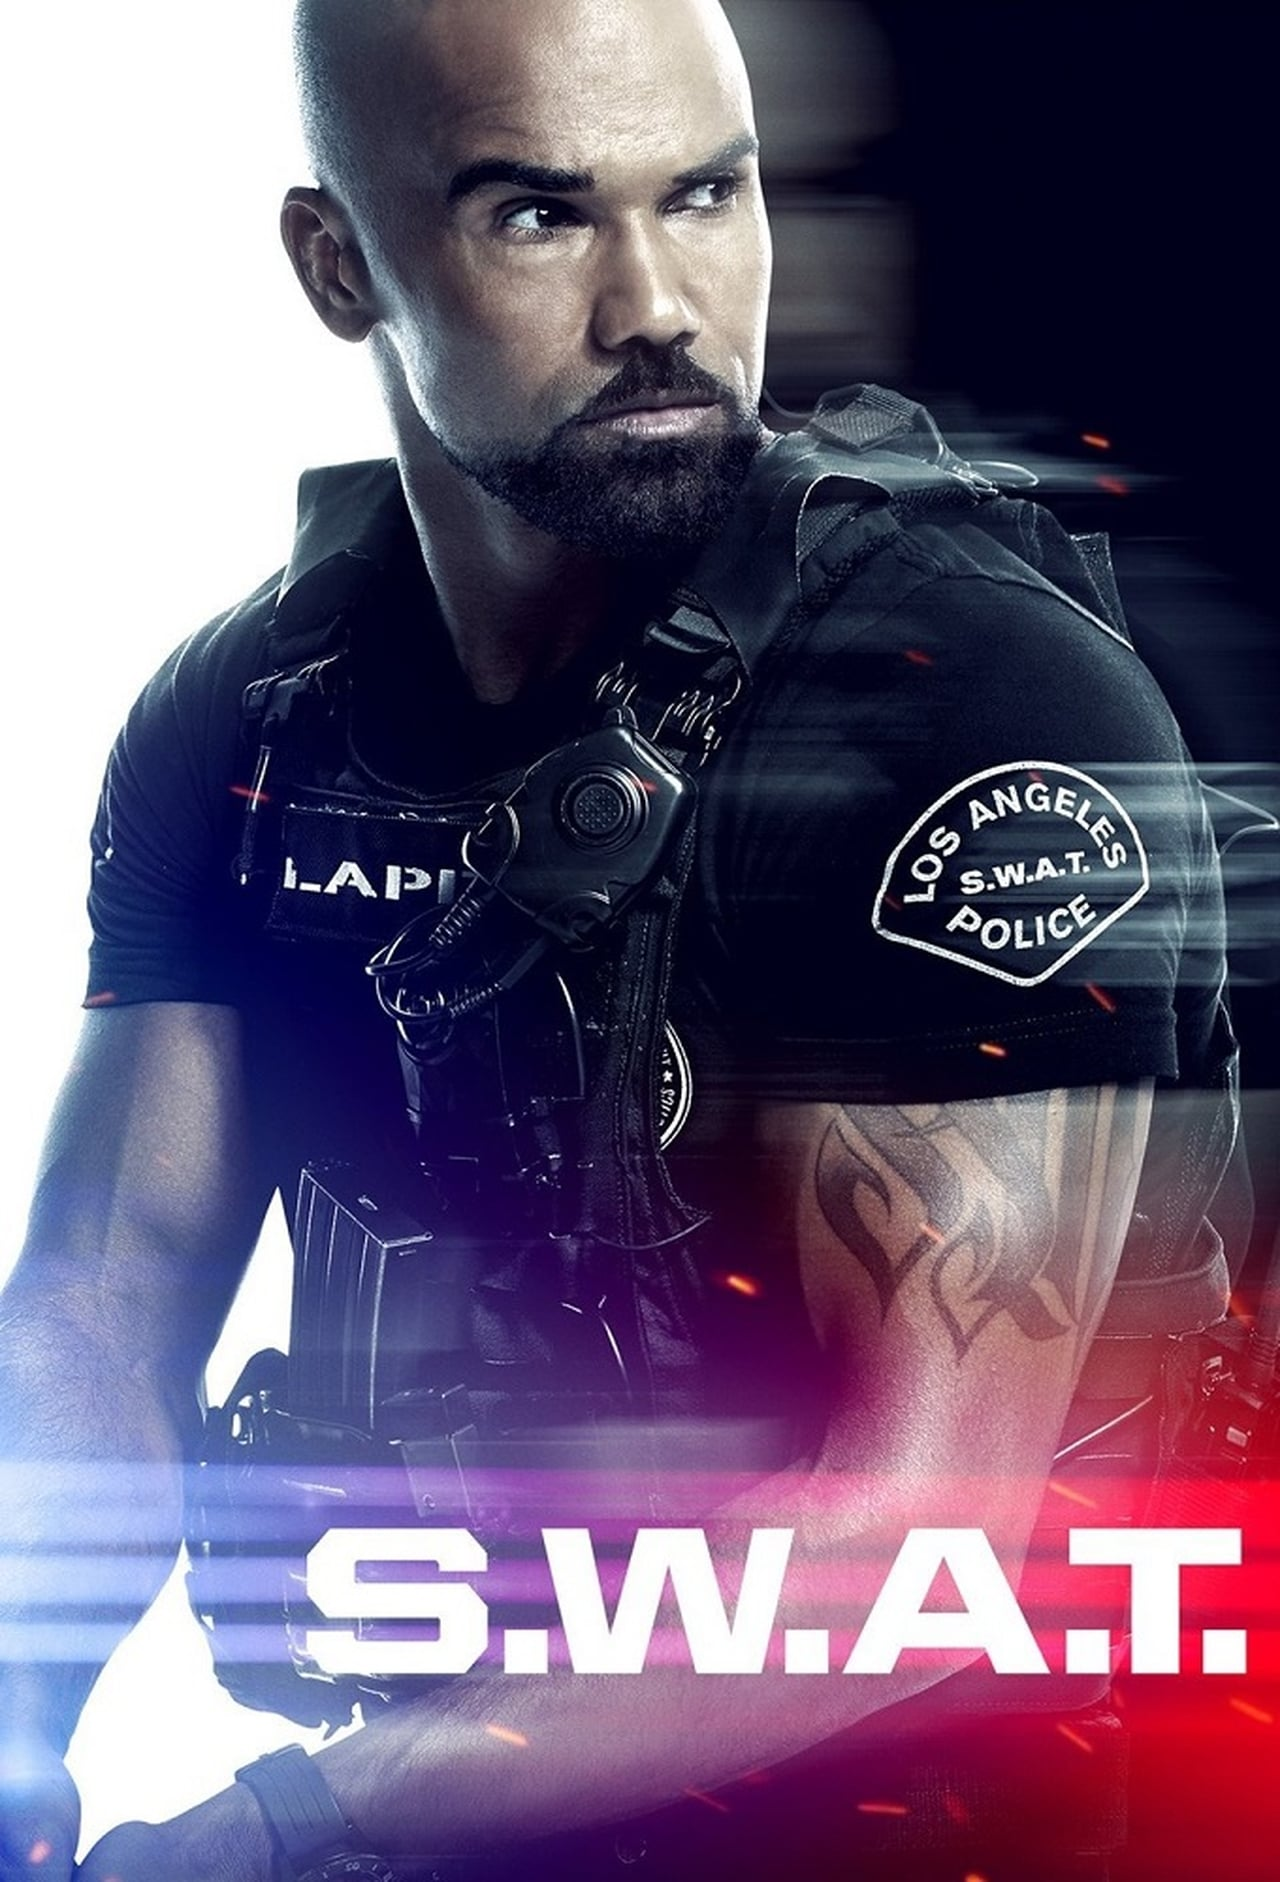 S.w.a.t. Season 2 (2018) putlockers cafe